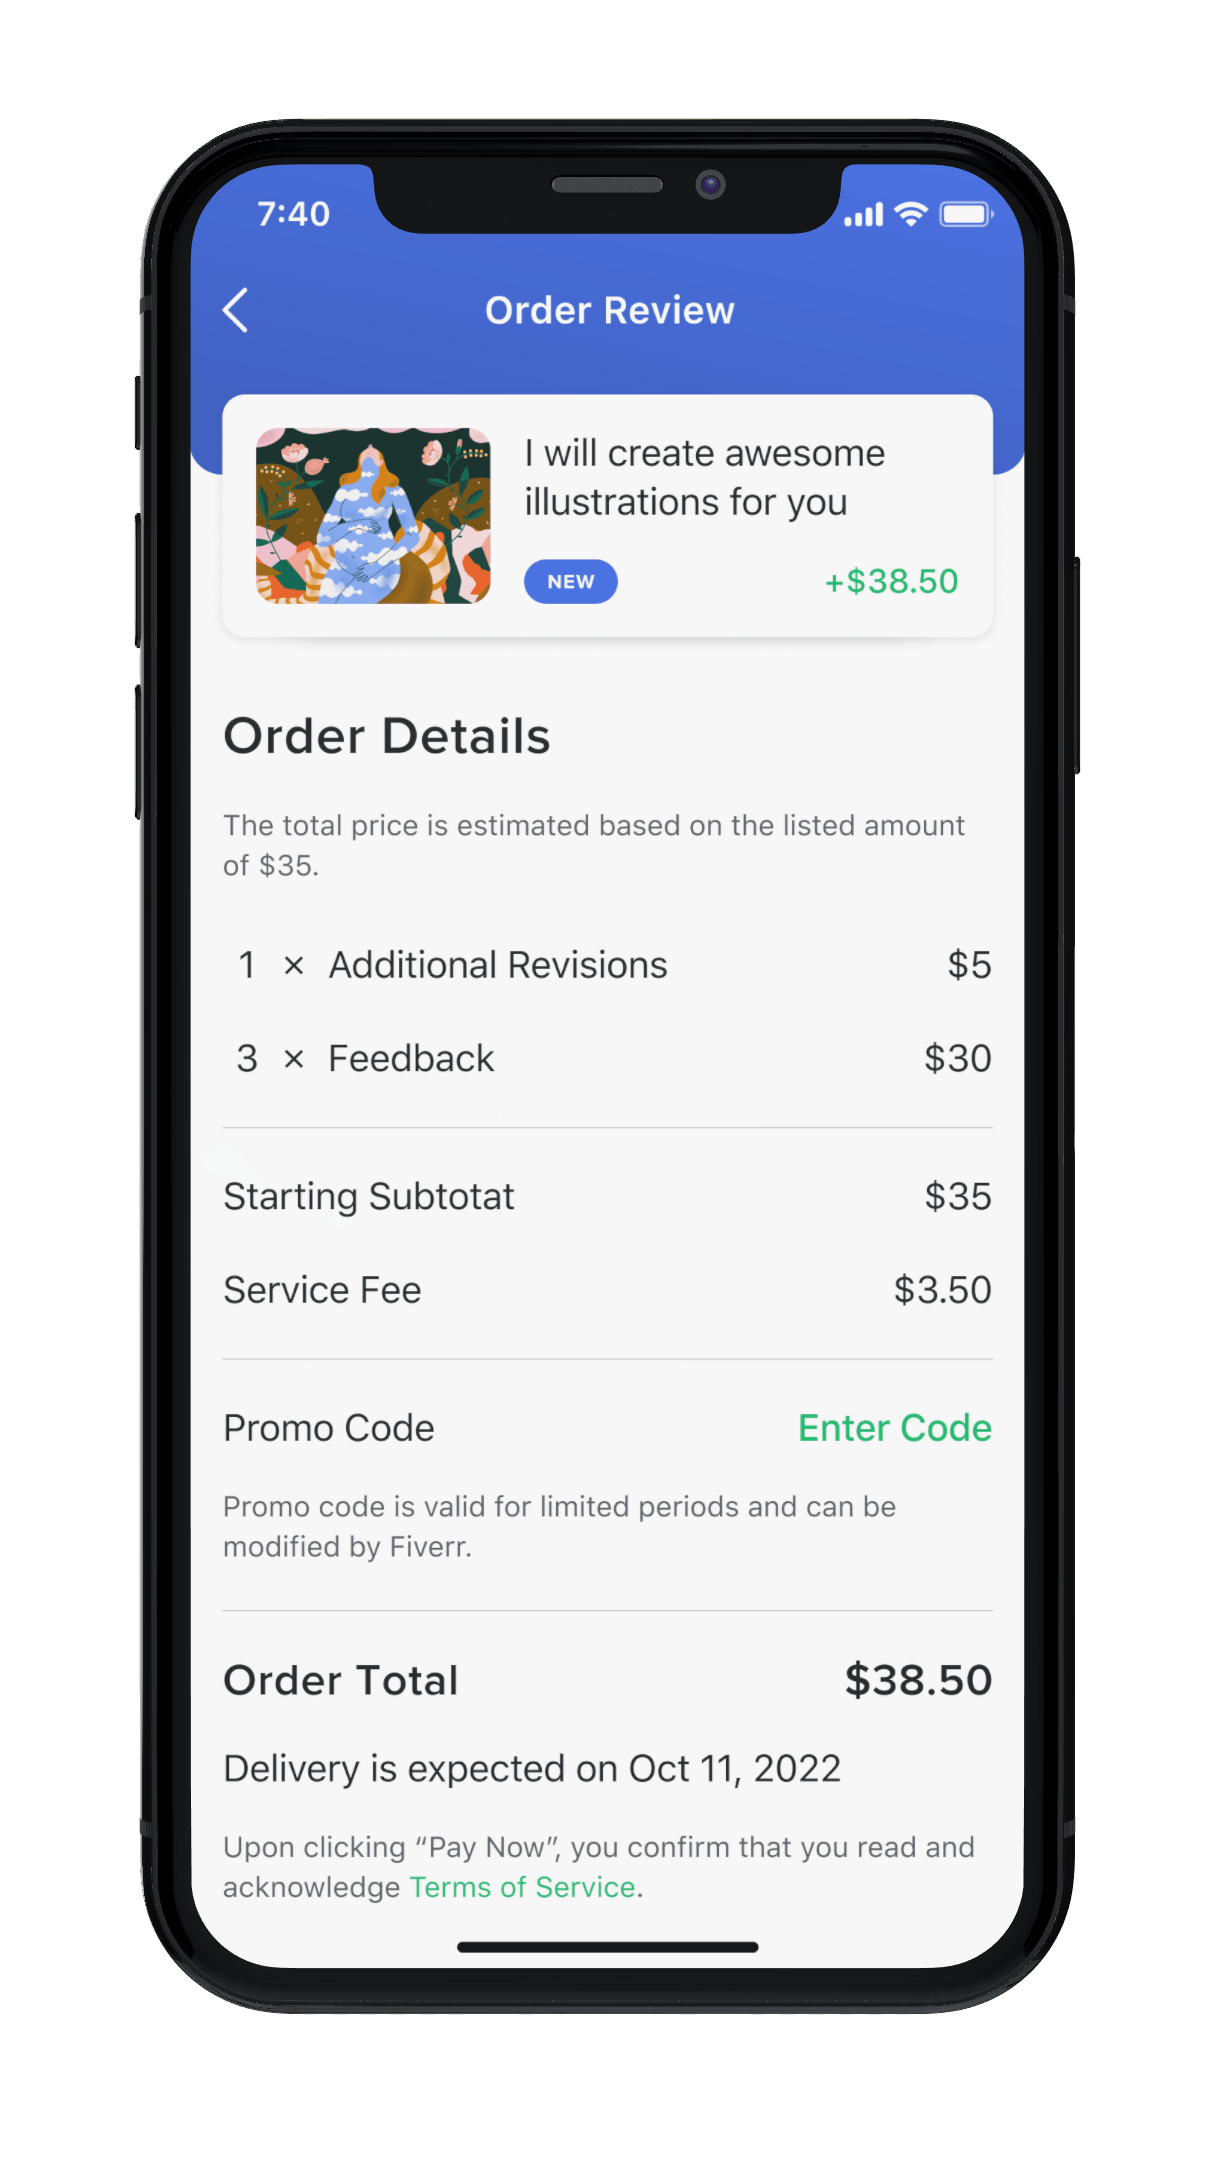 orderreview_05